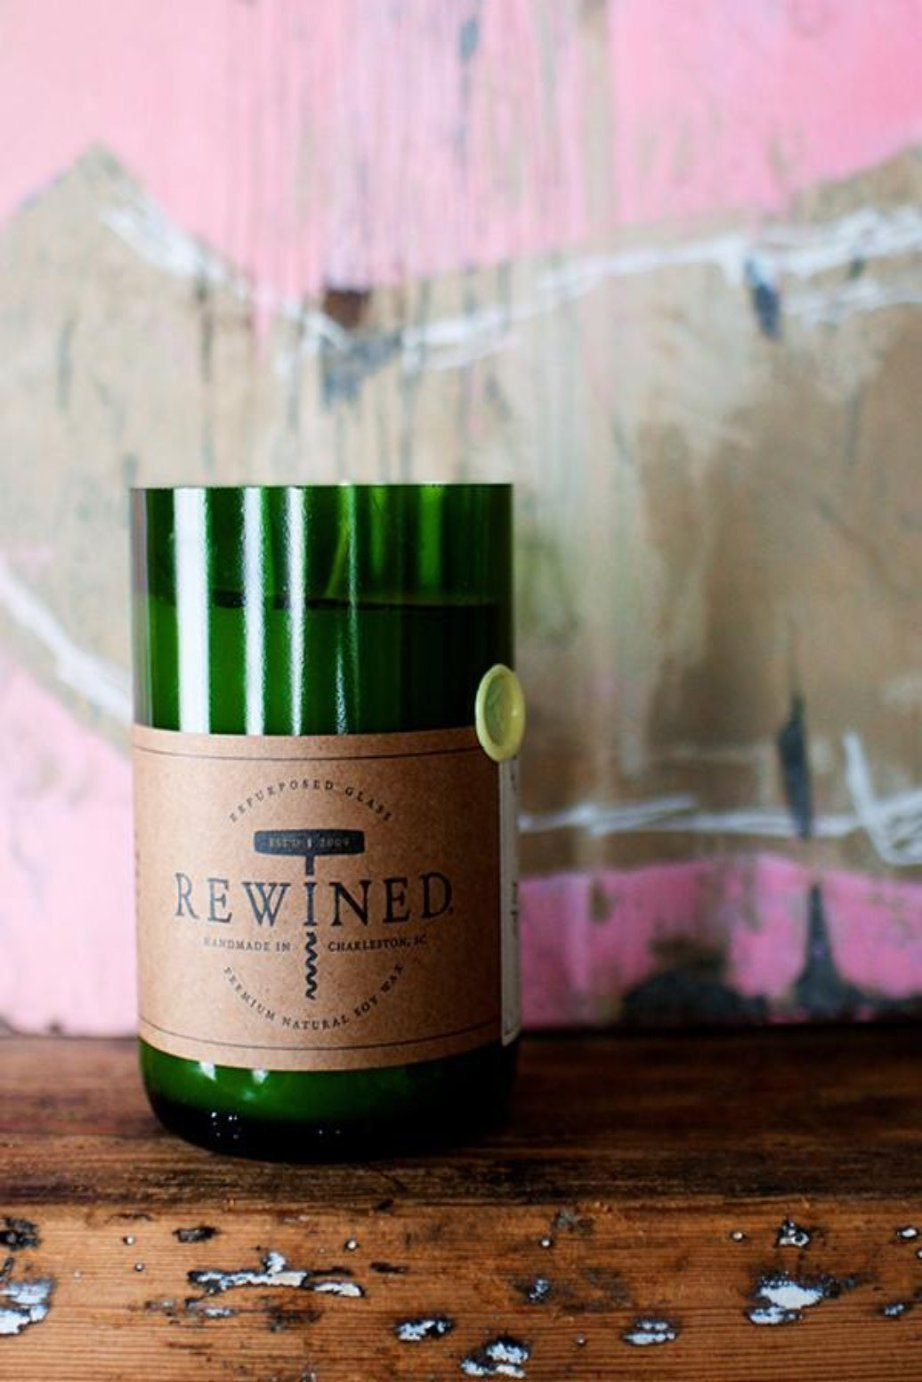 The Original Rewined Candle Chardonnay Scented Shop Rewined